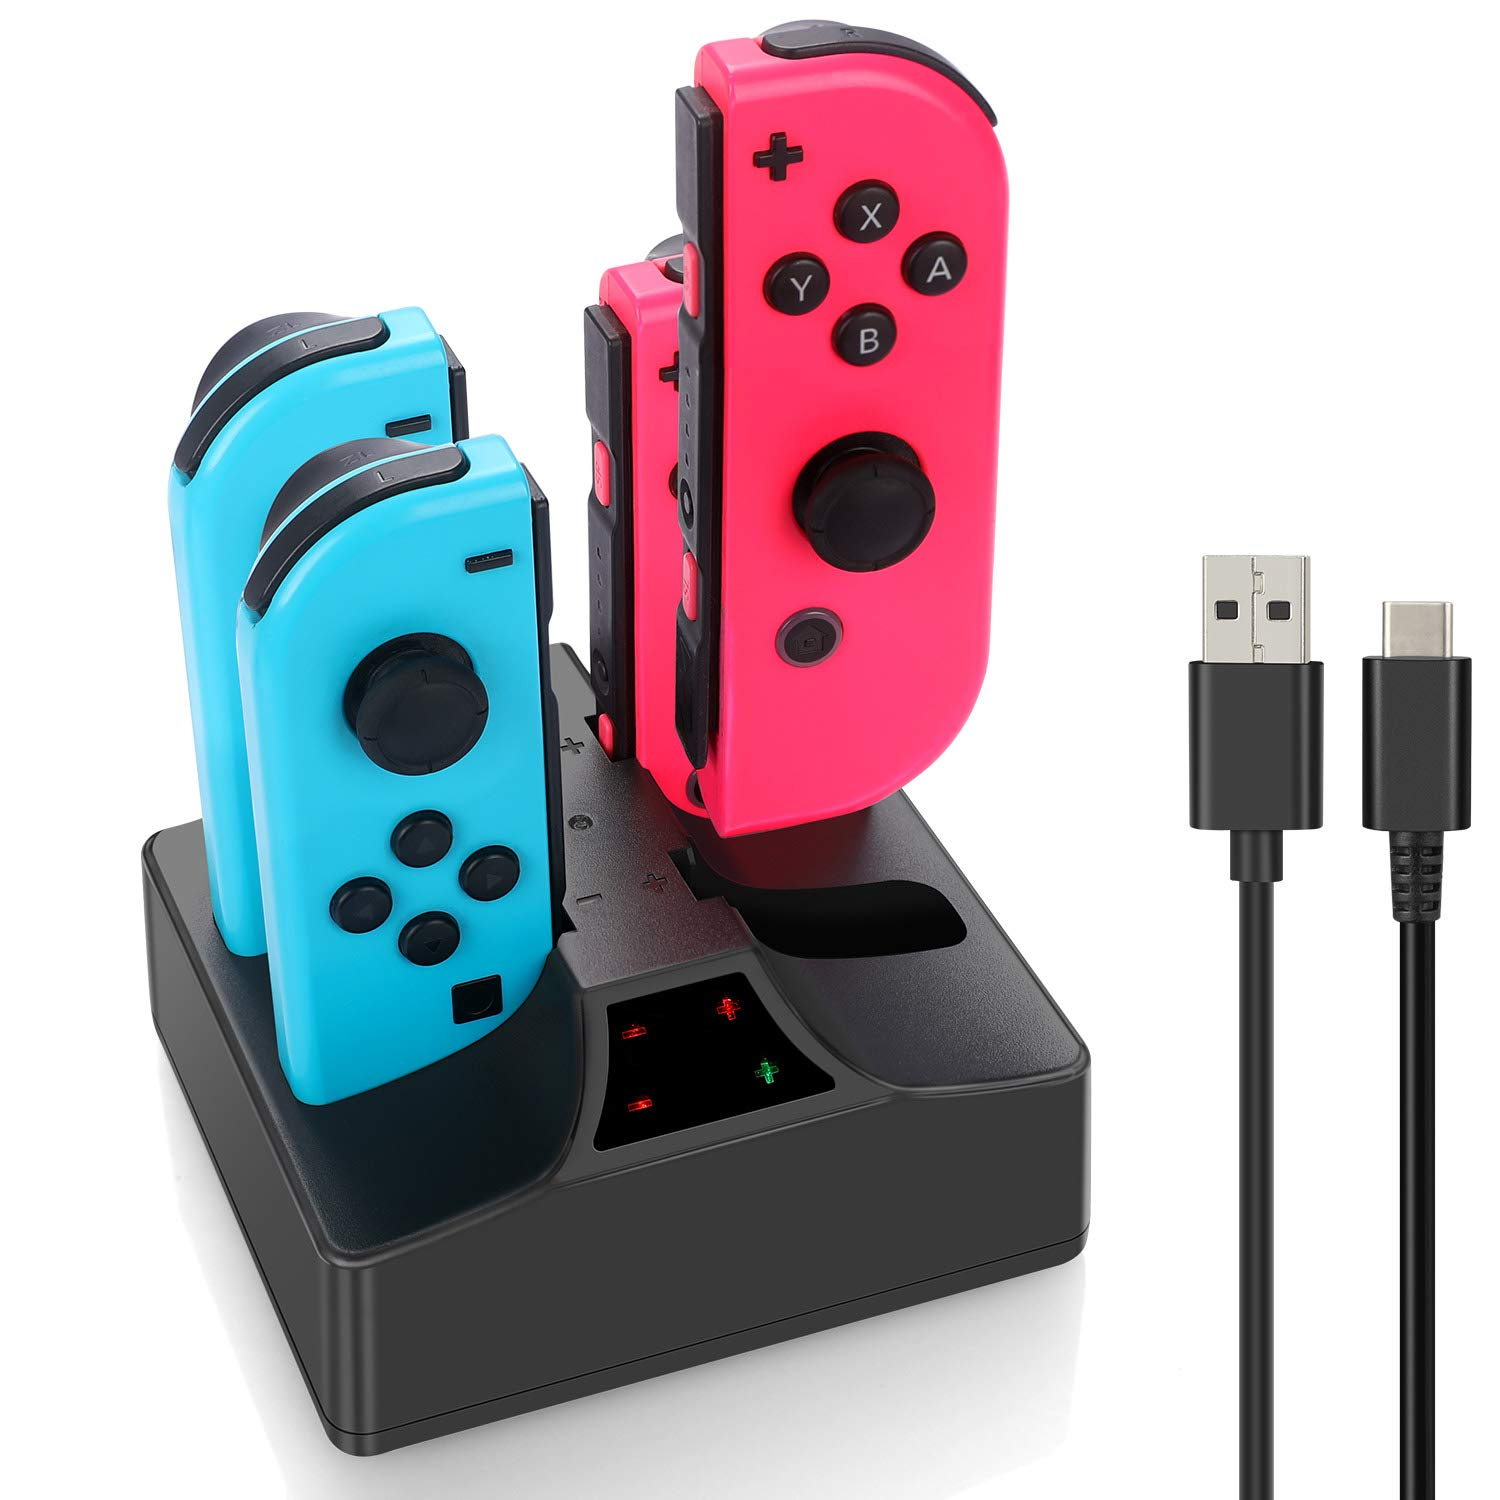 Switch Controller Charger, Joy con Charging Dock Station for Nintendo Switch Joycon and Pro Controller with 5ft Type C Cable